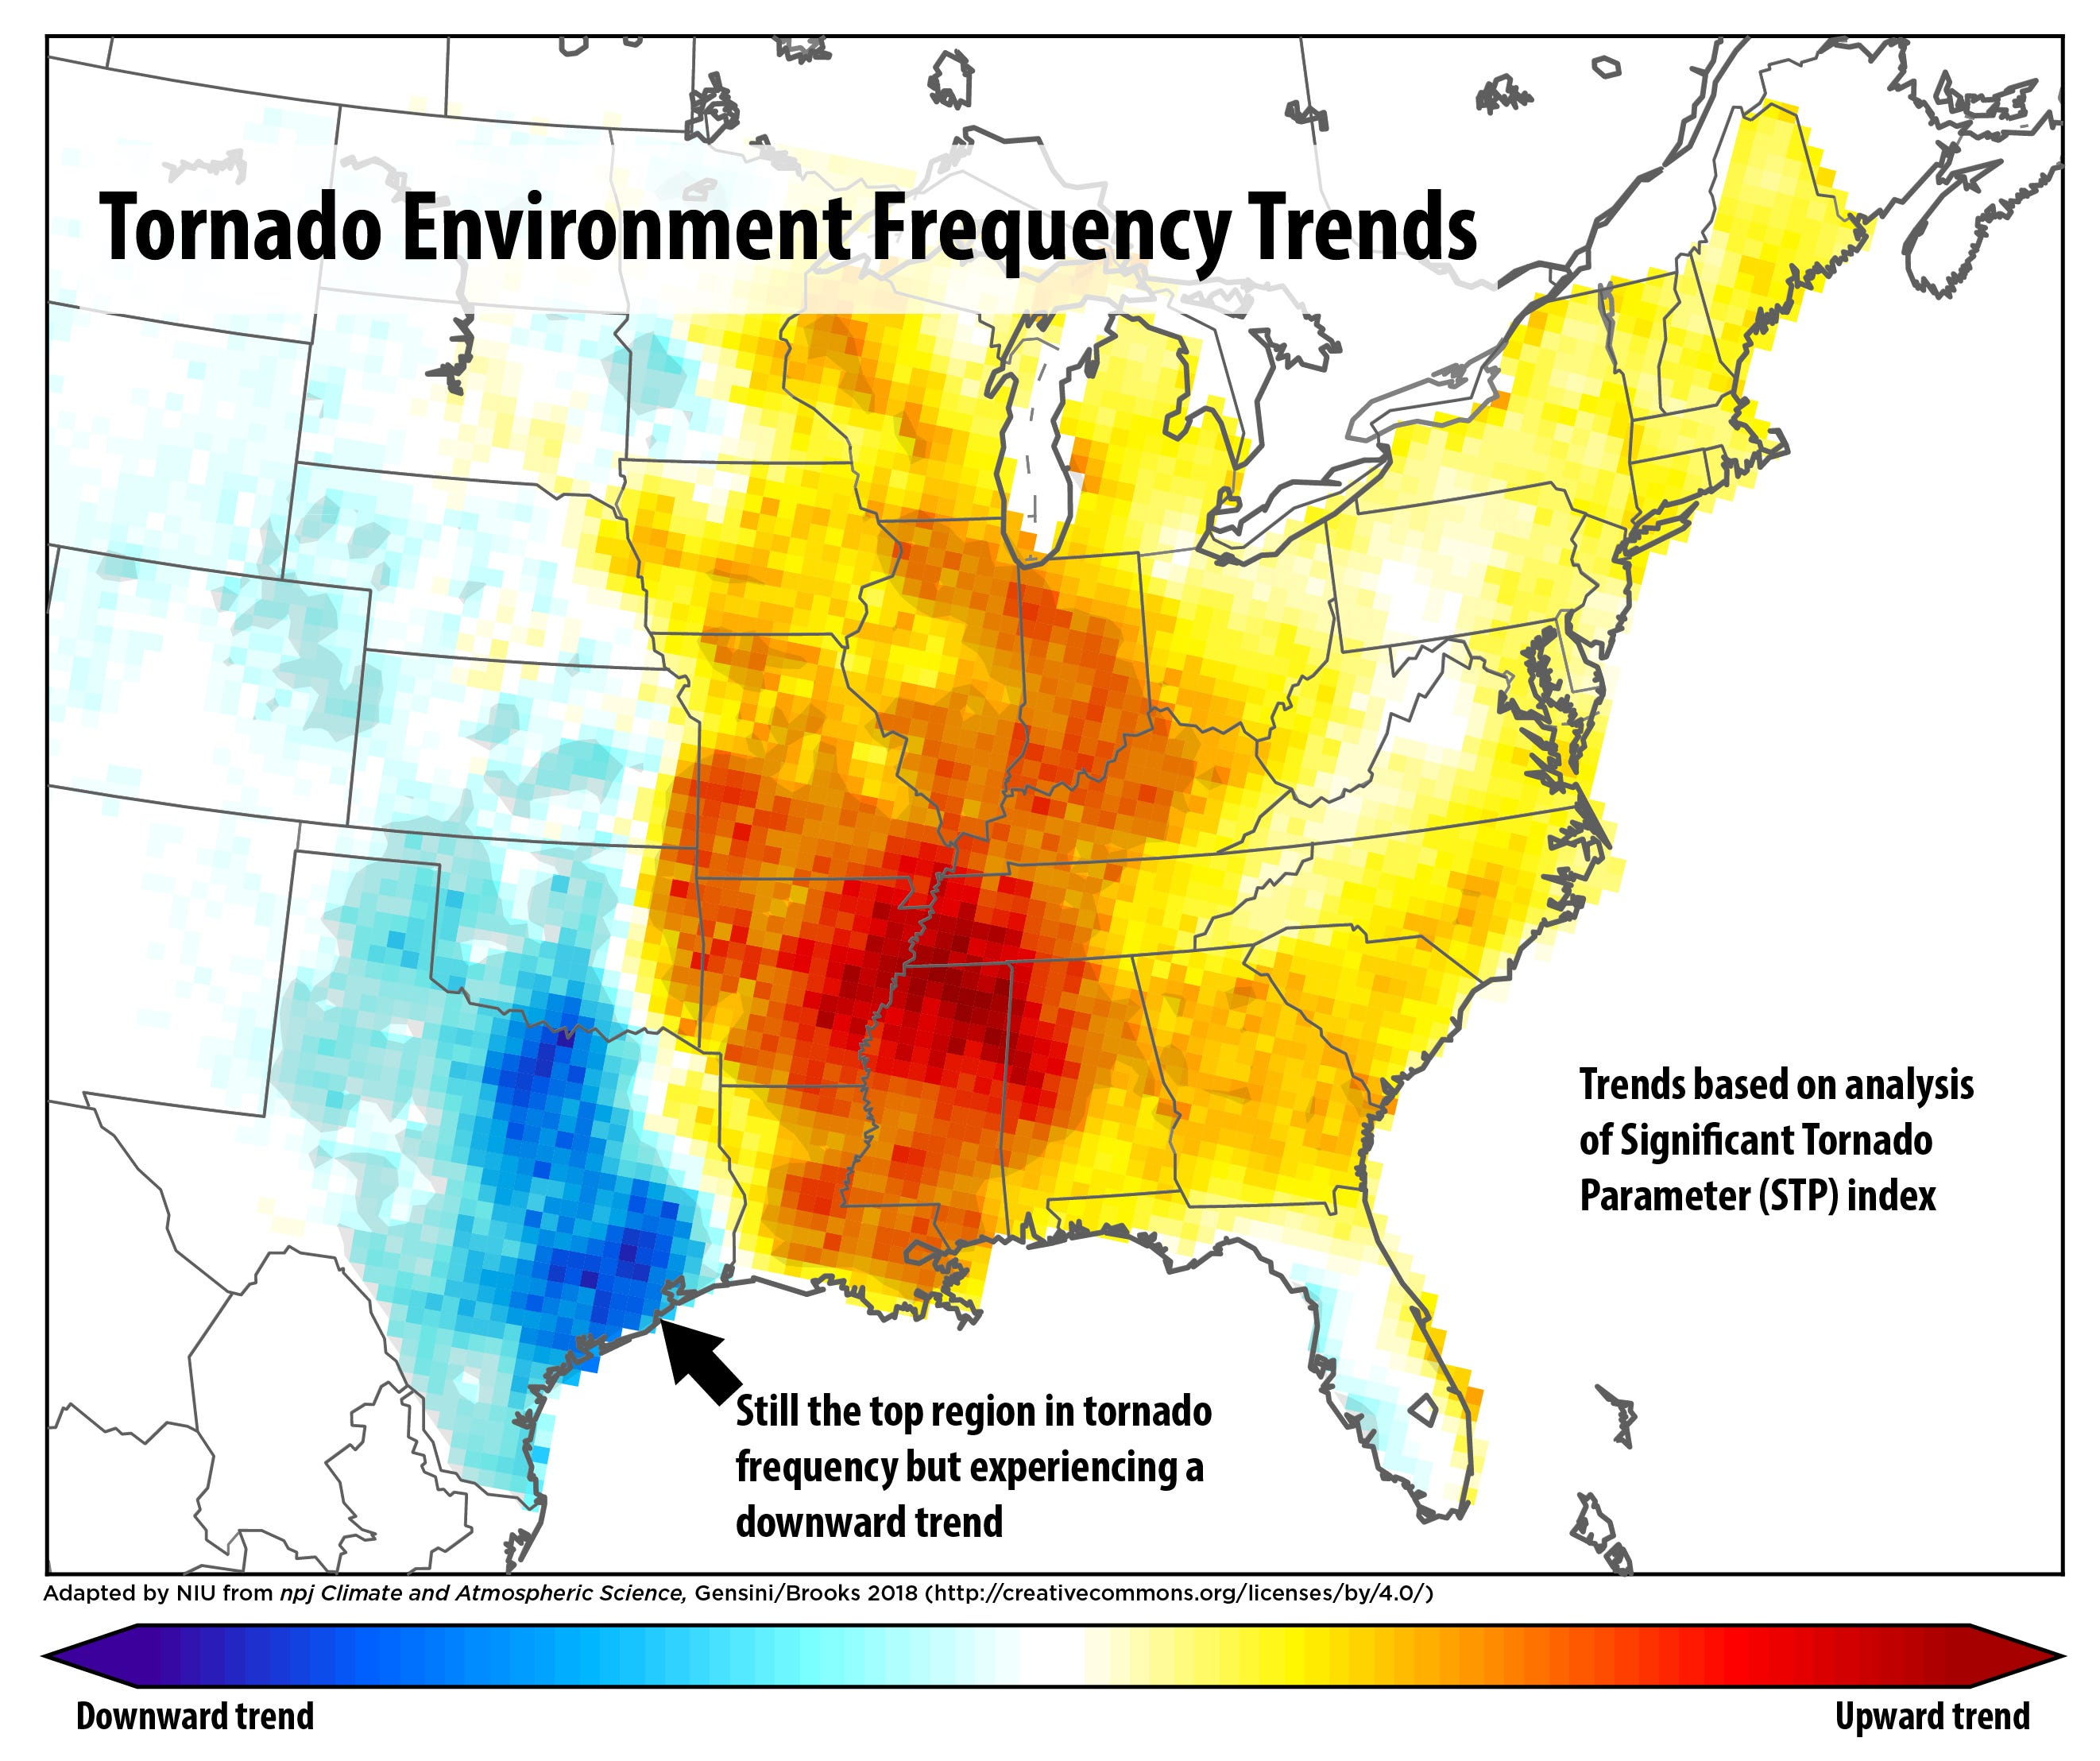 Tornado Alley may be shifting to the east on illinois flood map, il map, illinois aurora map, weather map, illinois flooding map, illinois mine subsidence map, illinois wind map, illinois topo map, illinois sinkhole map, illinois precipitation map, illinois rock map, storm map, illinois water map, illinois union map, illinois doppler radar map, illinois state map, harrisburg illinois map, illinois snow map, illinois snowfall map, illinois earthquake,